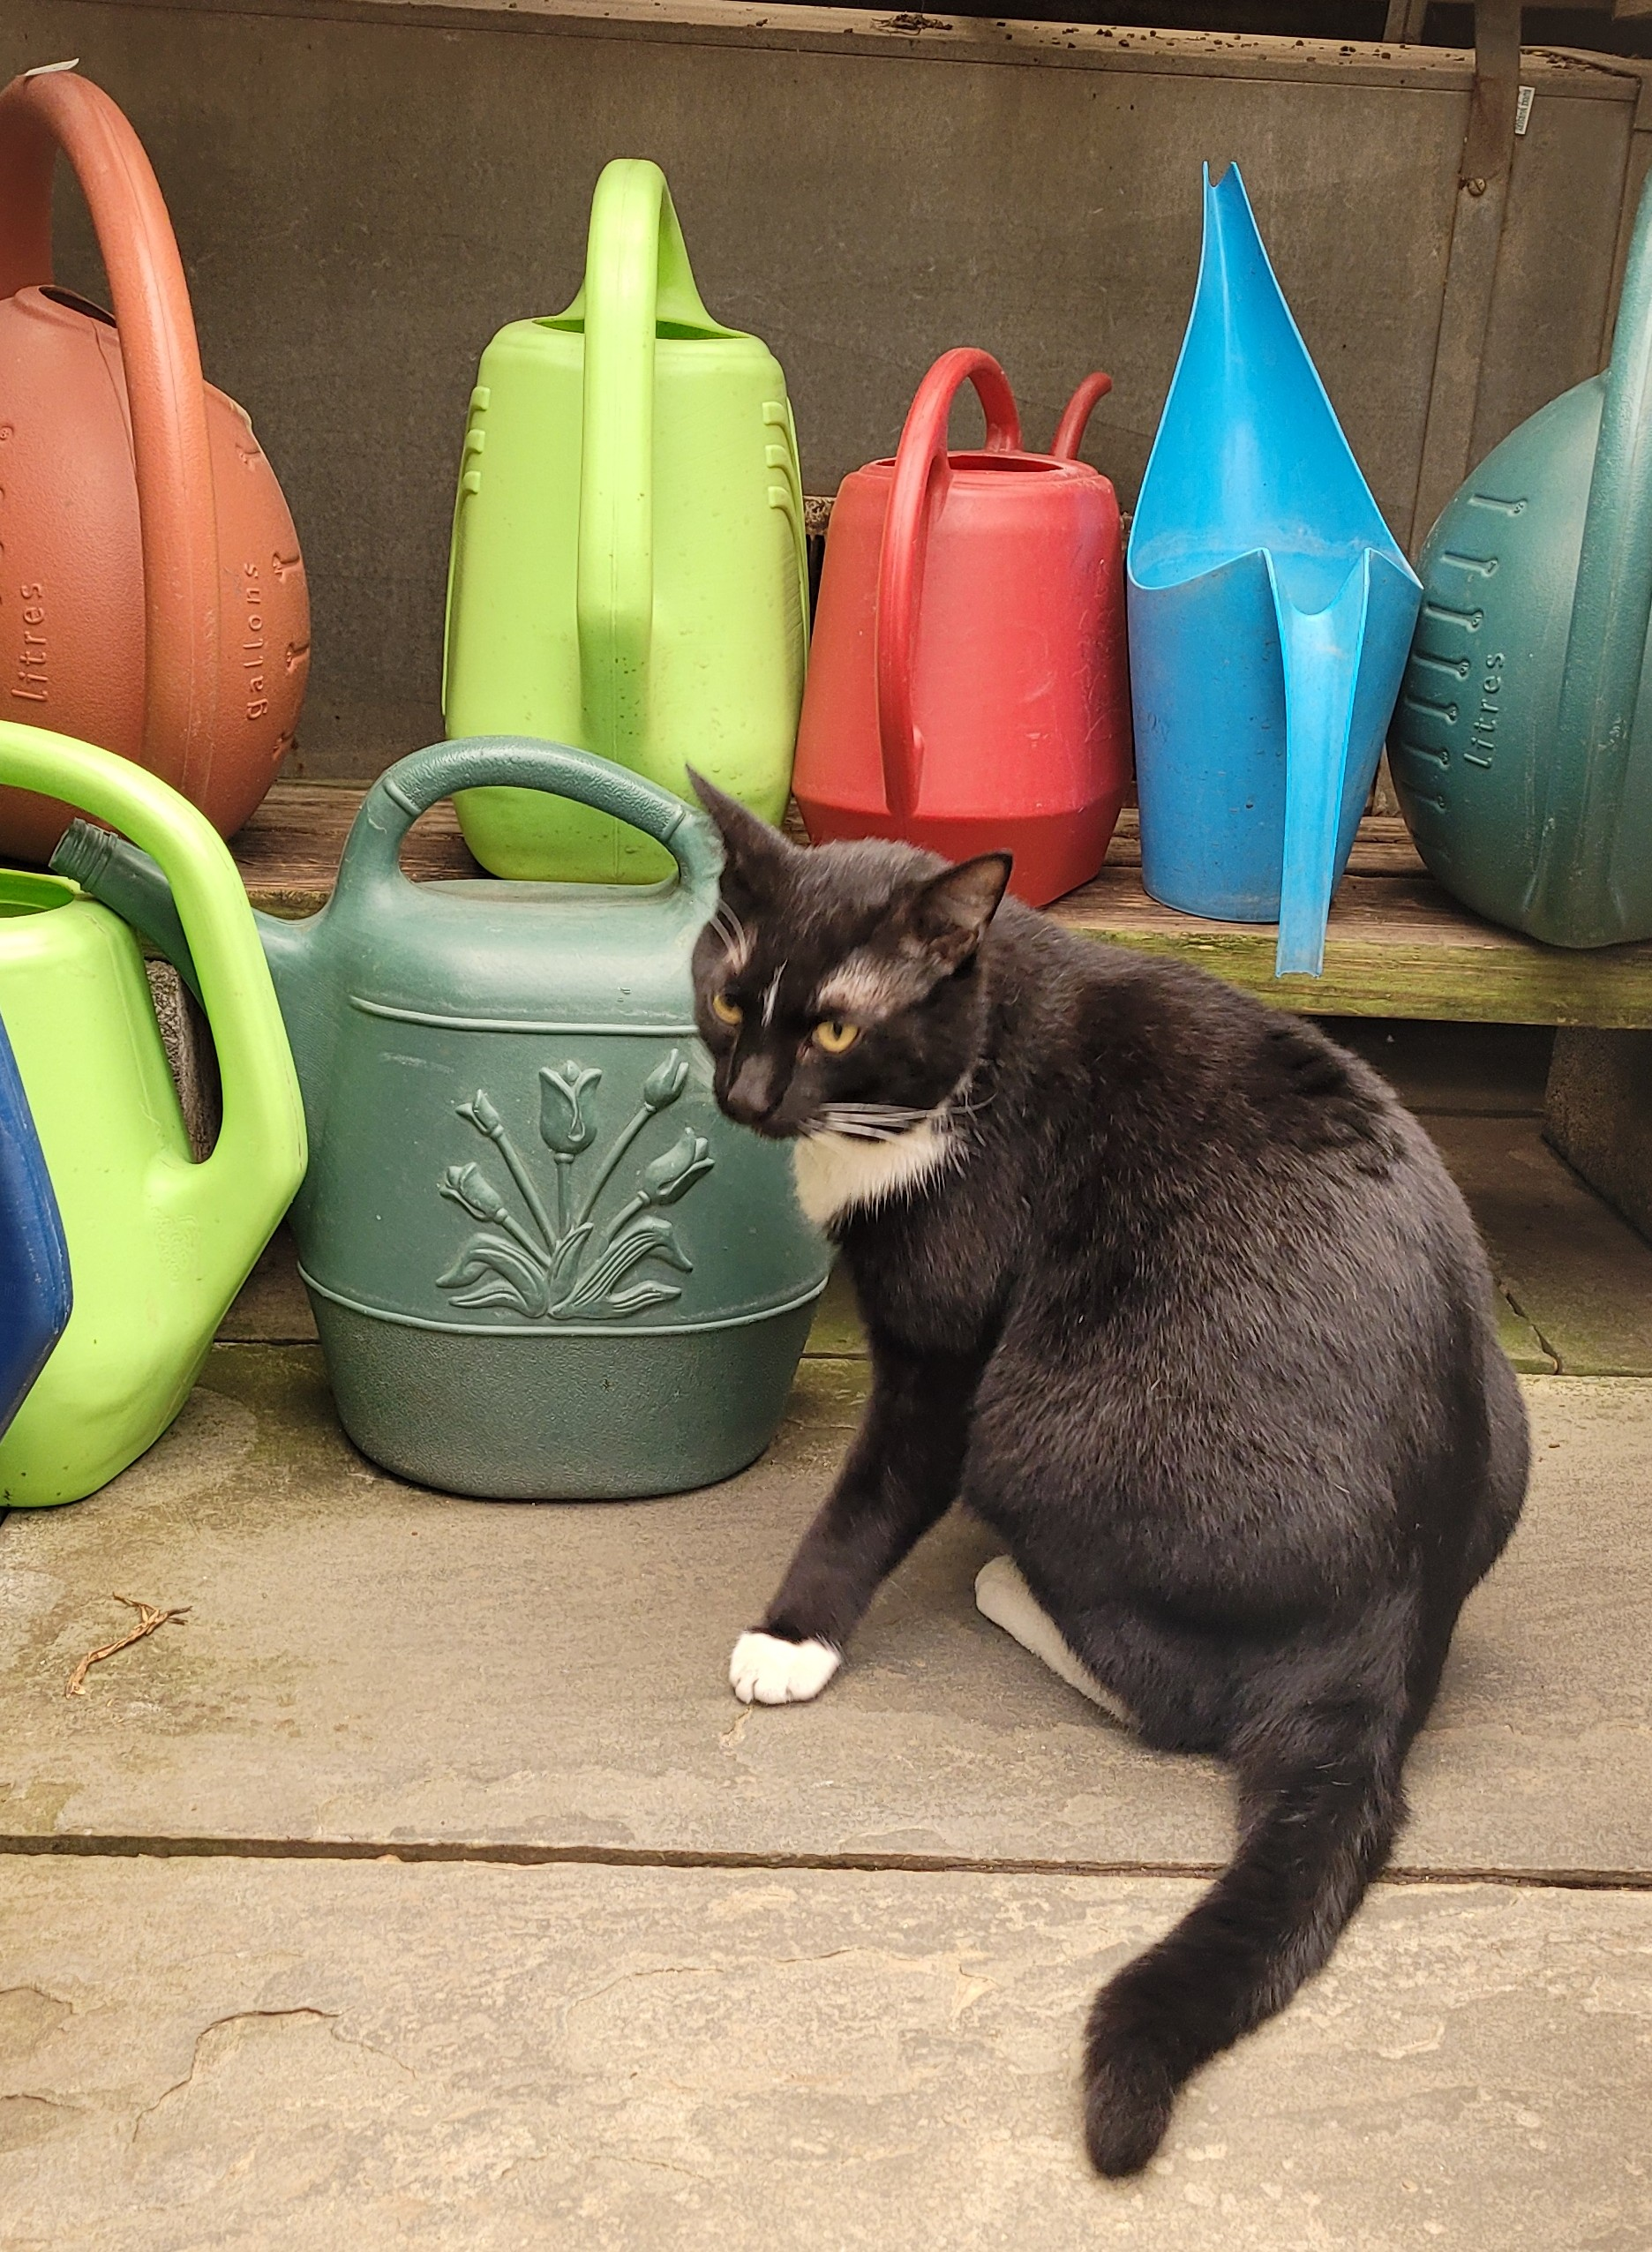 A black and white cat sitting in front of several colorful watering cans